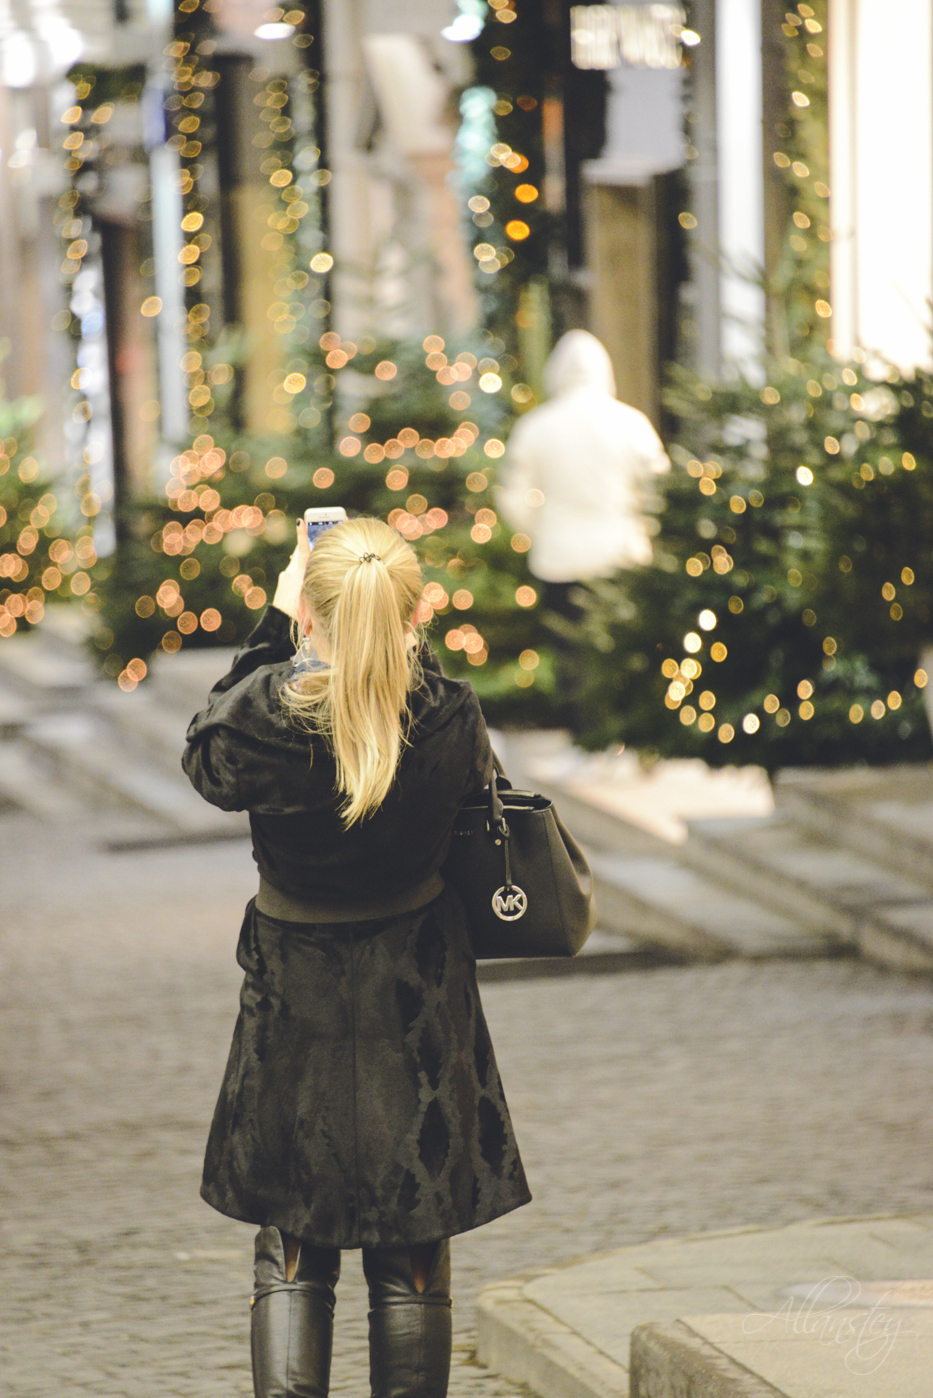 Beautiful blond Russian girl taking pictures on a Moscow street decorated for Christmas.